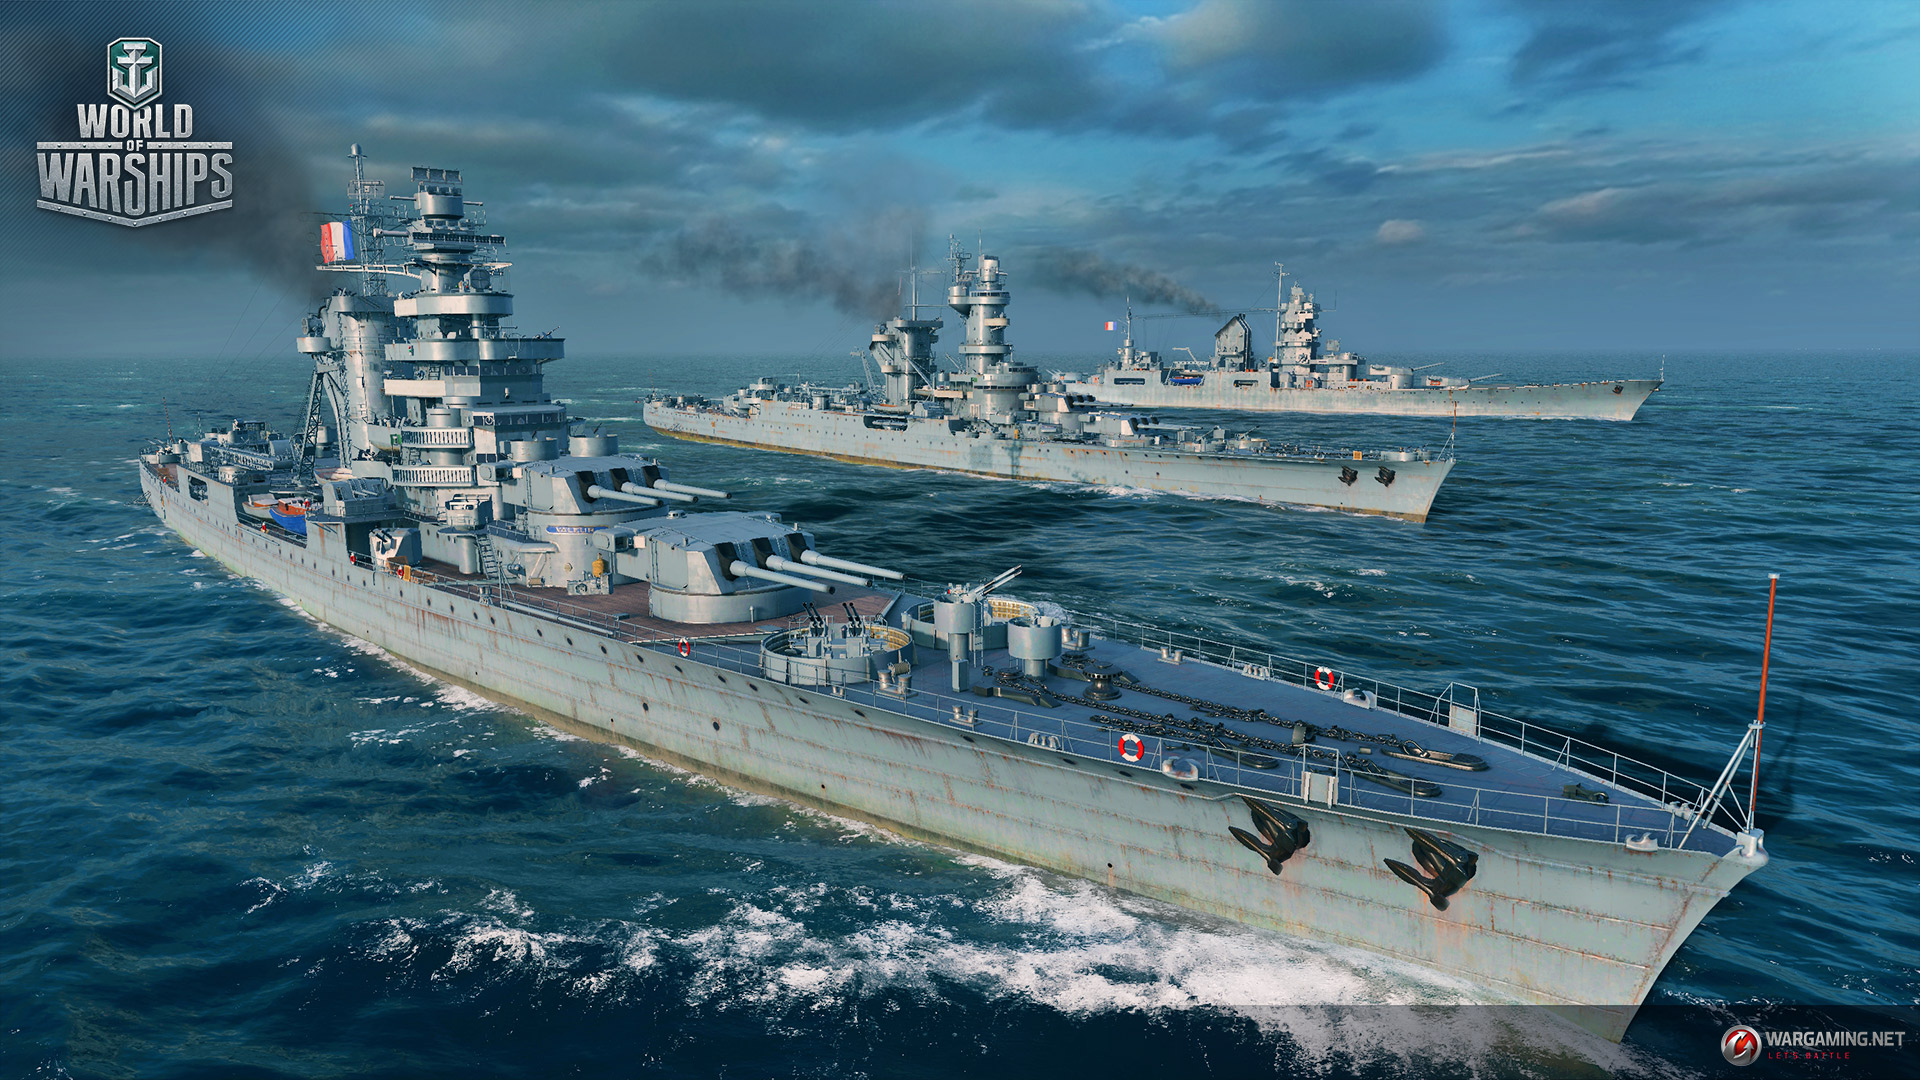 Fighting Wallpaper Hd World Of Warships Welcomes French Cruisers